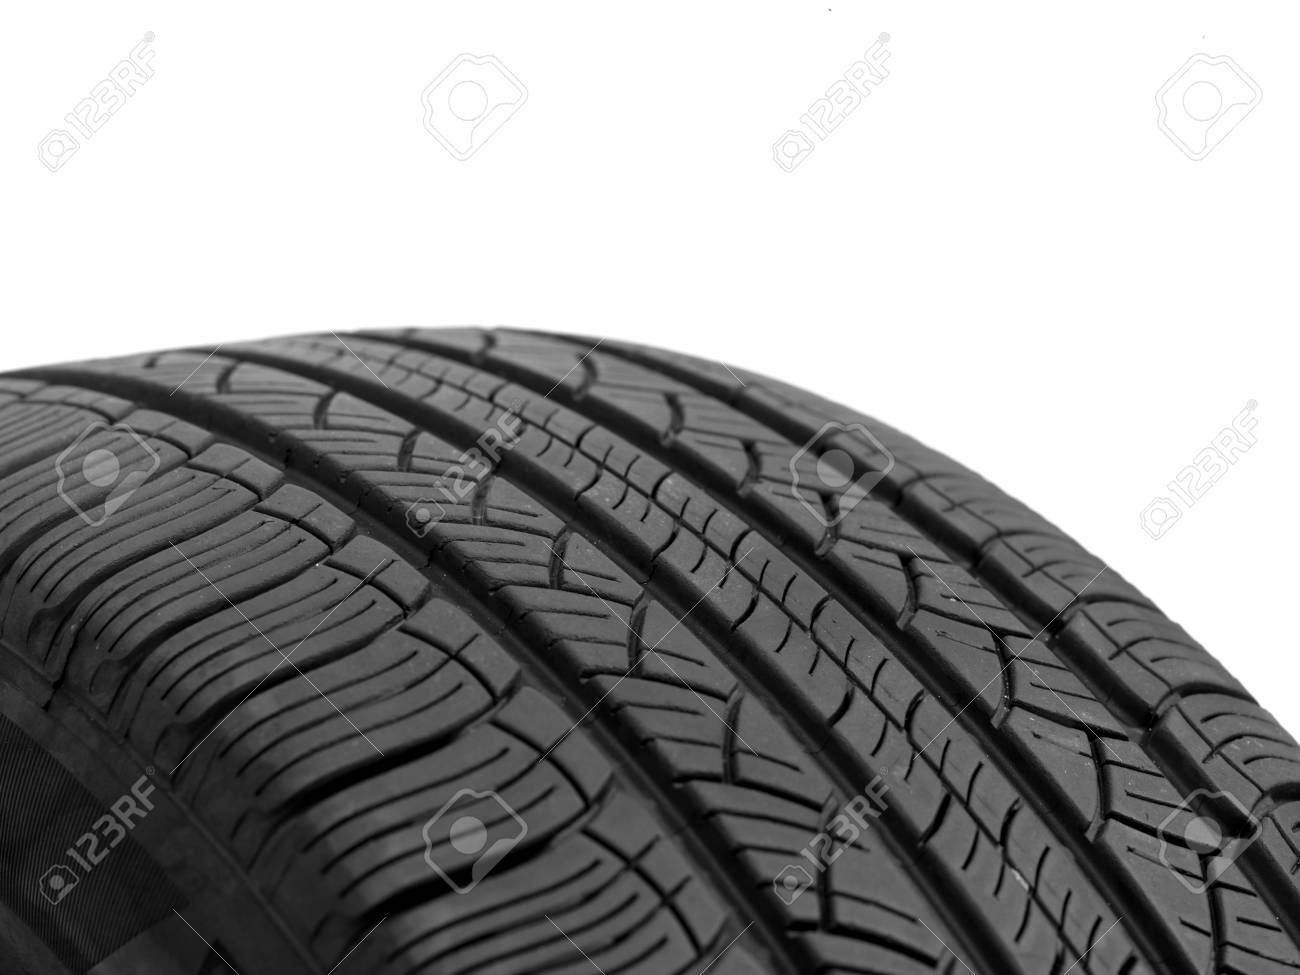 A black rubber tyre isolated against a white background Stock Photo - 22391390